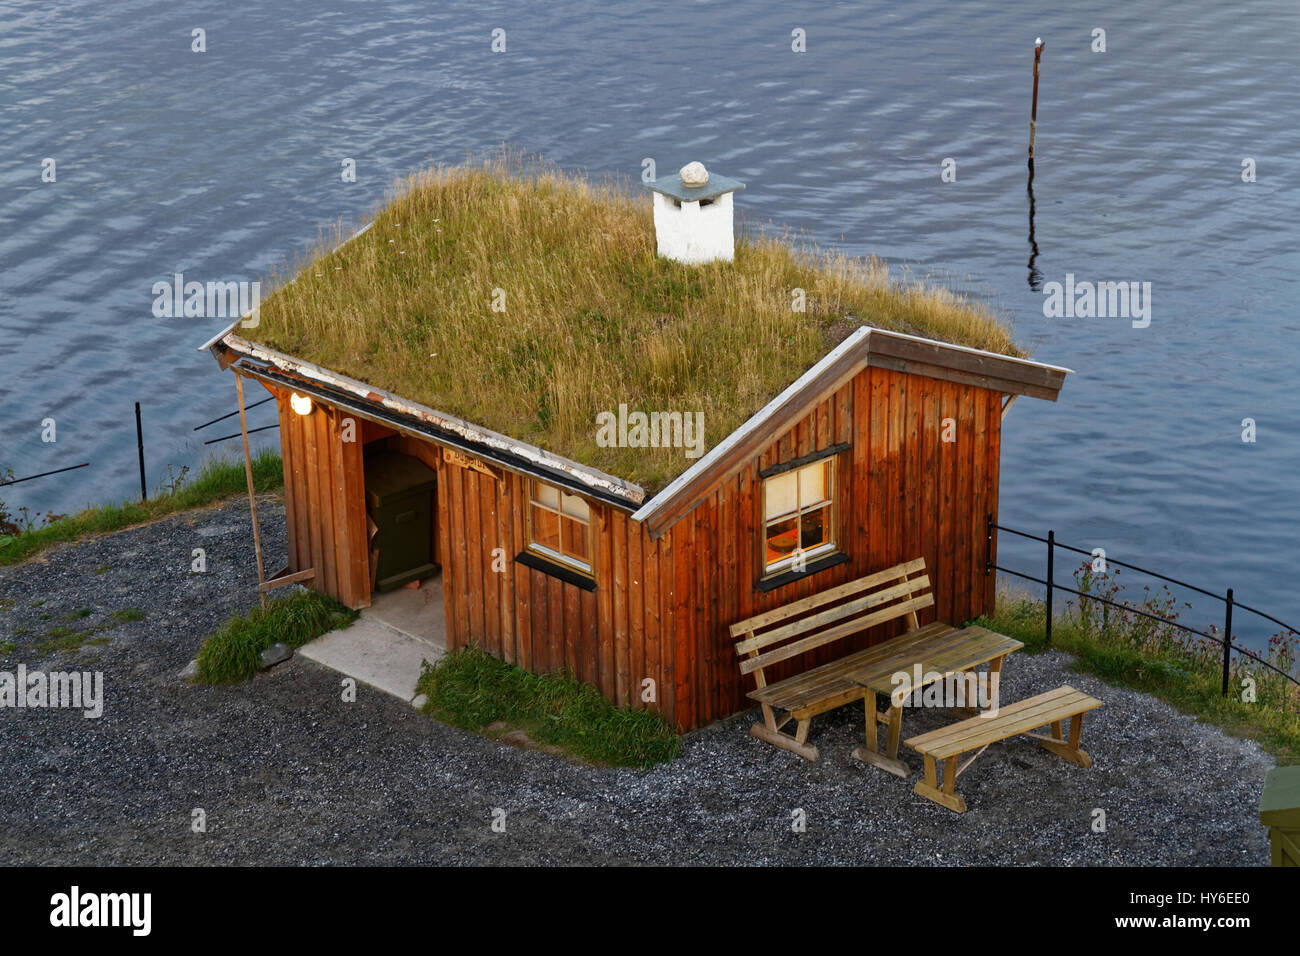 An old cottage in Bodø, Norway - Stock Image